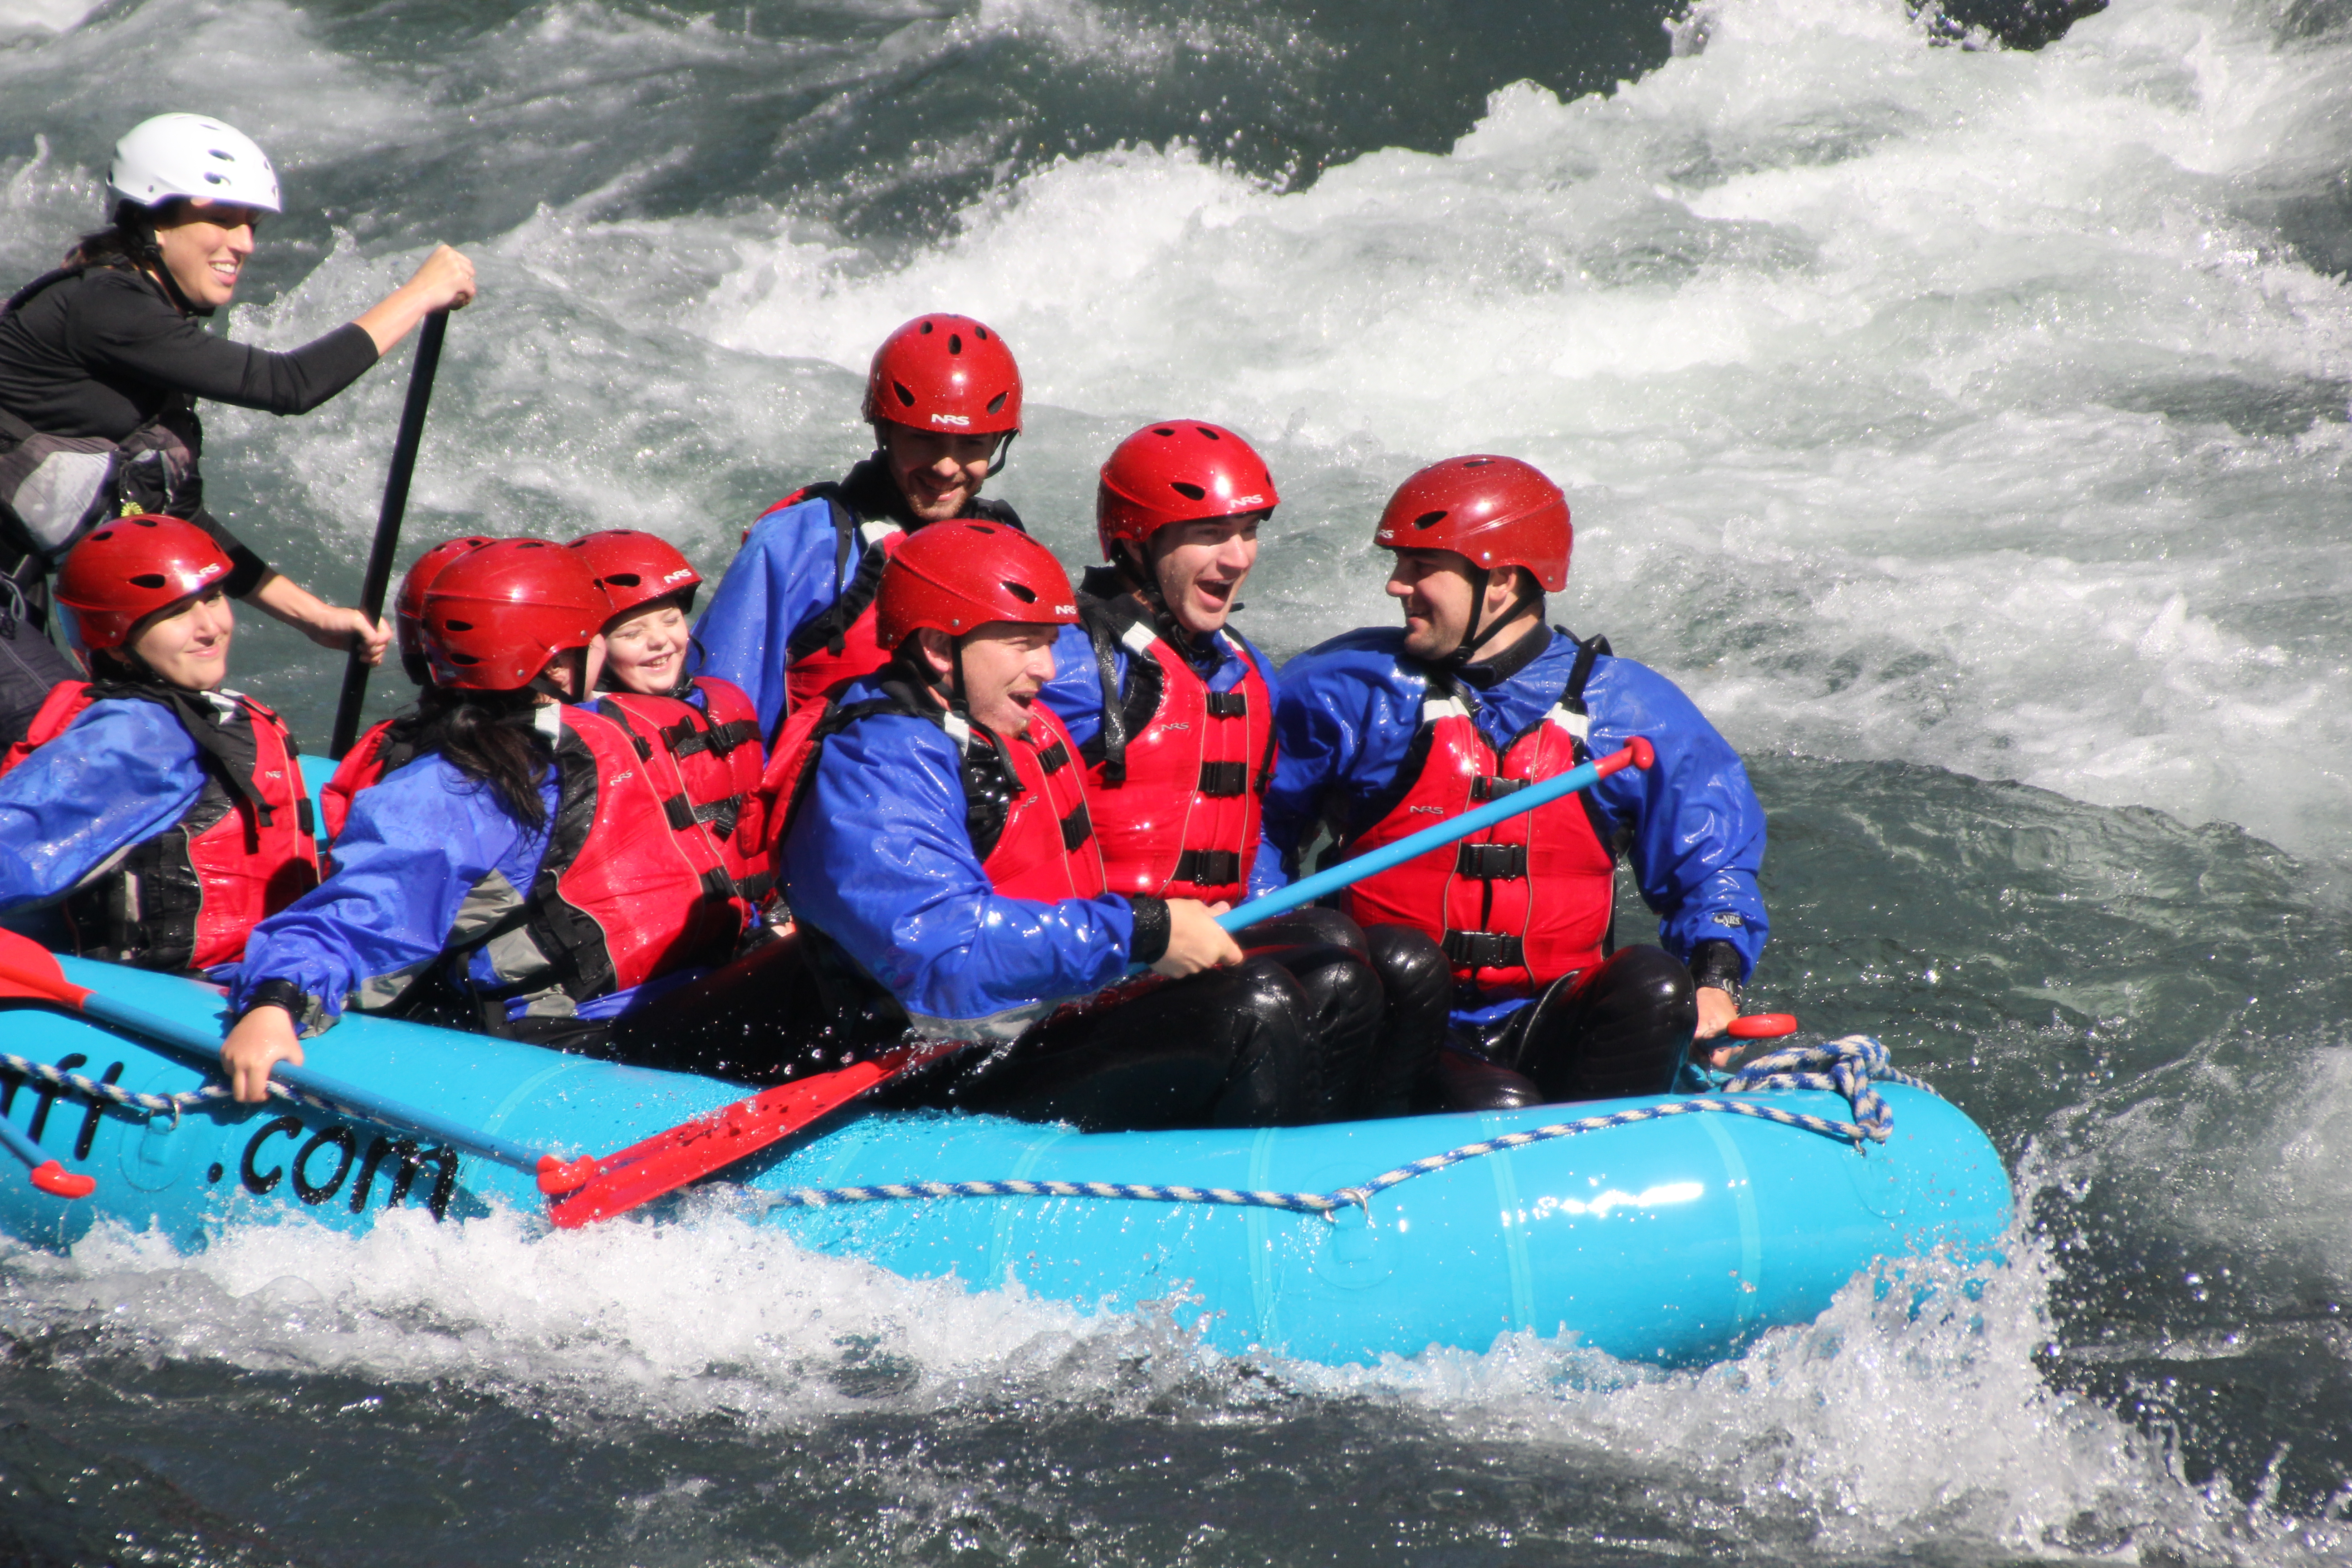 WDFW - Klickitat Wildlife Area - Rafting on White